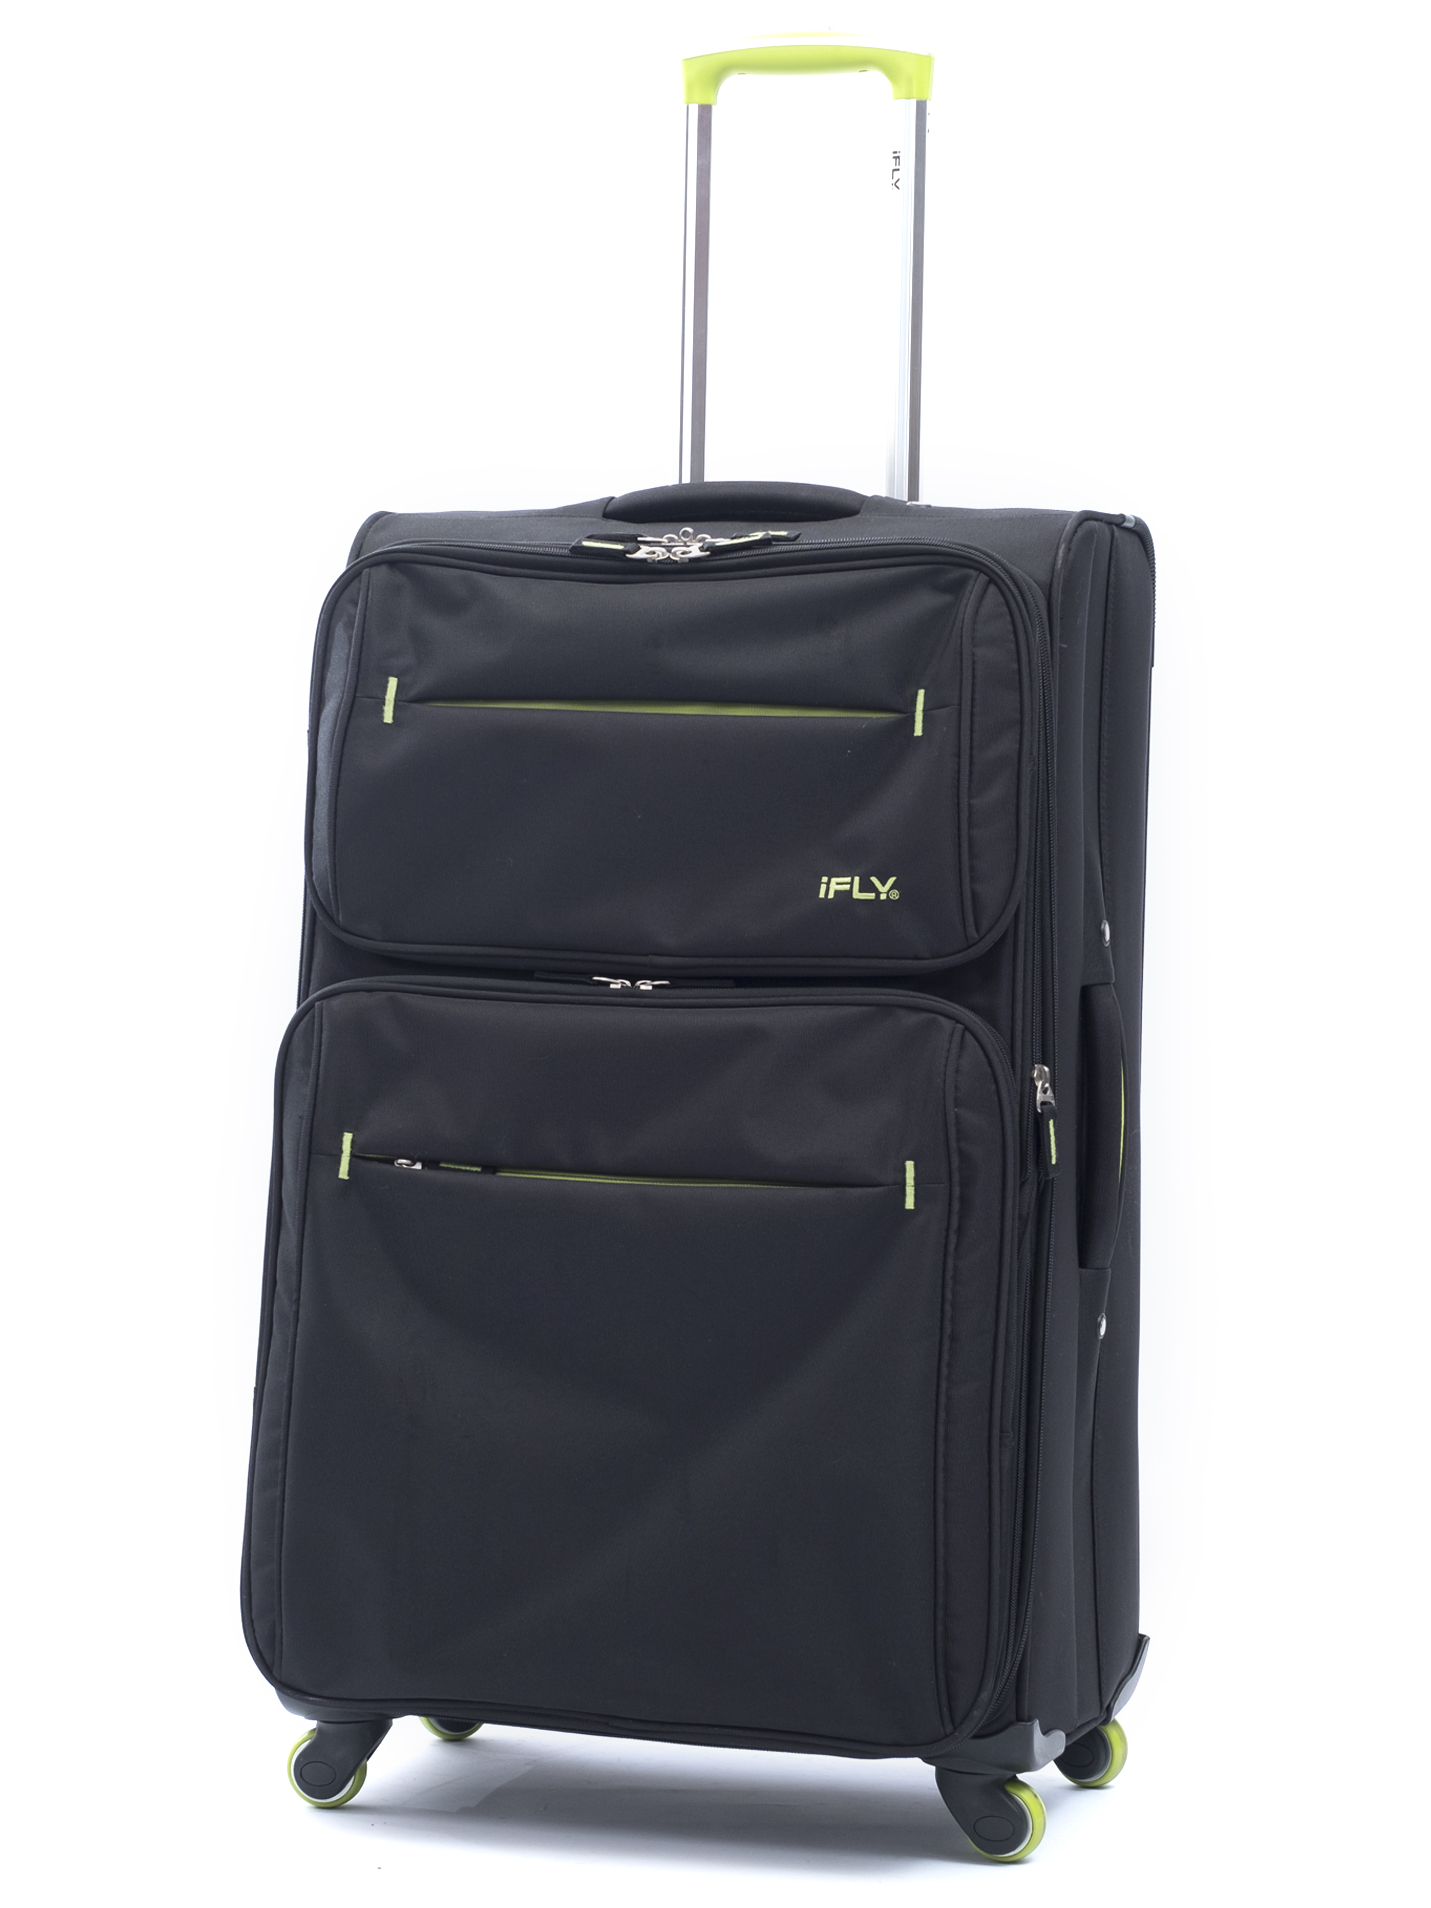 "iFLY Soft Sided Luggage Accent 28"", Black and Green"